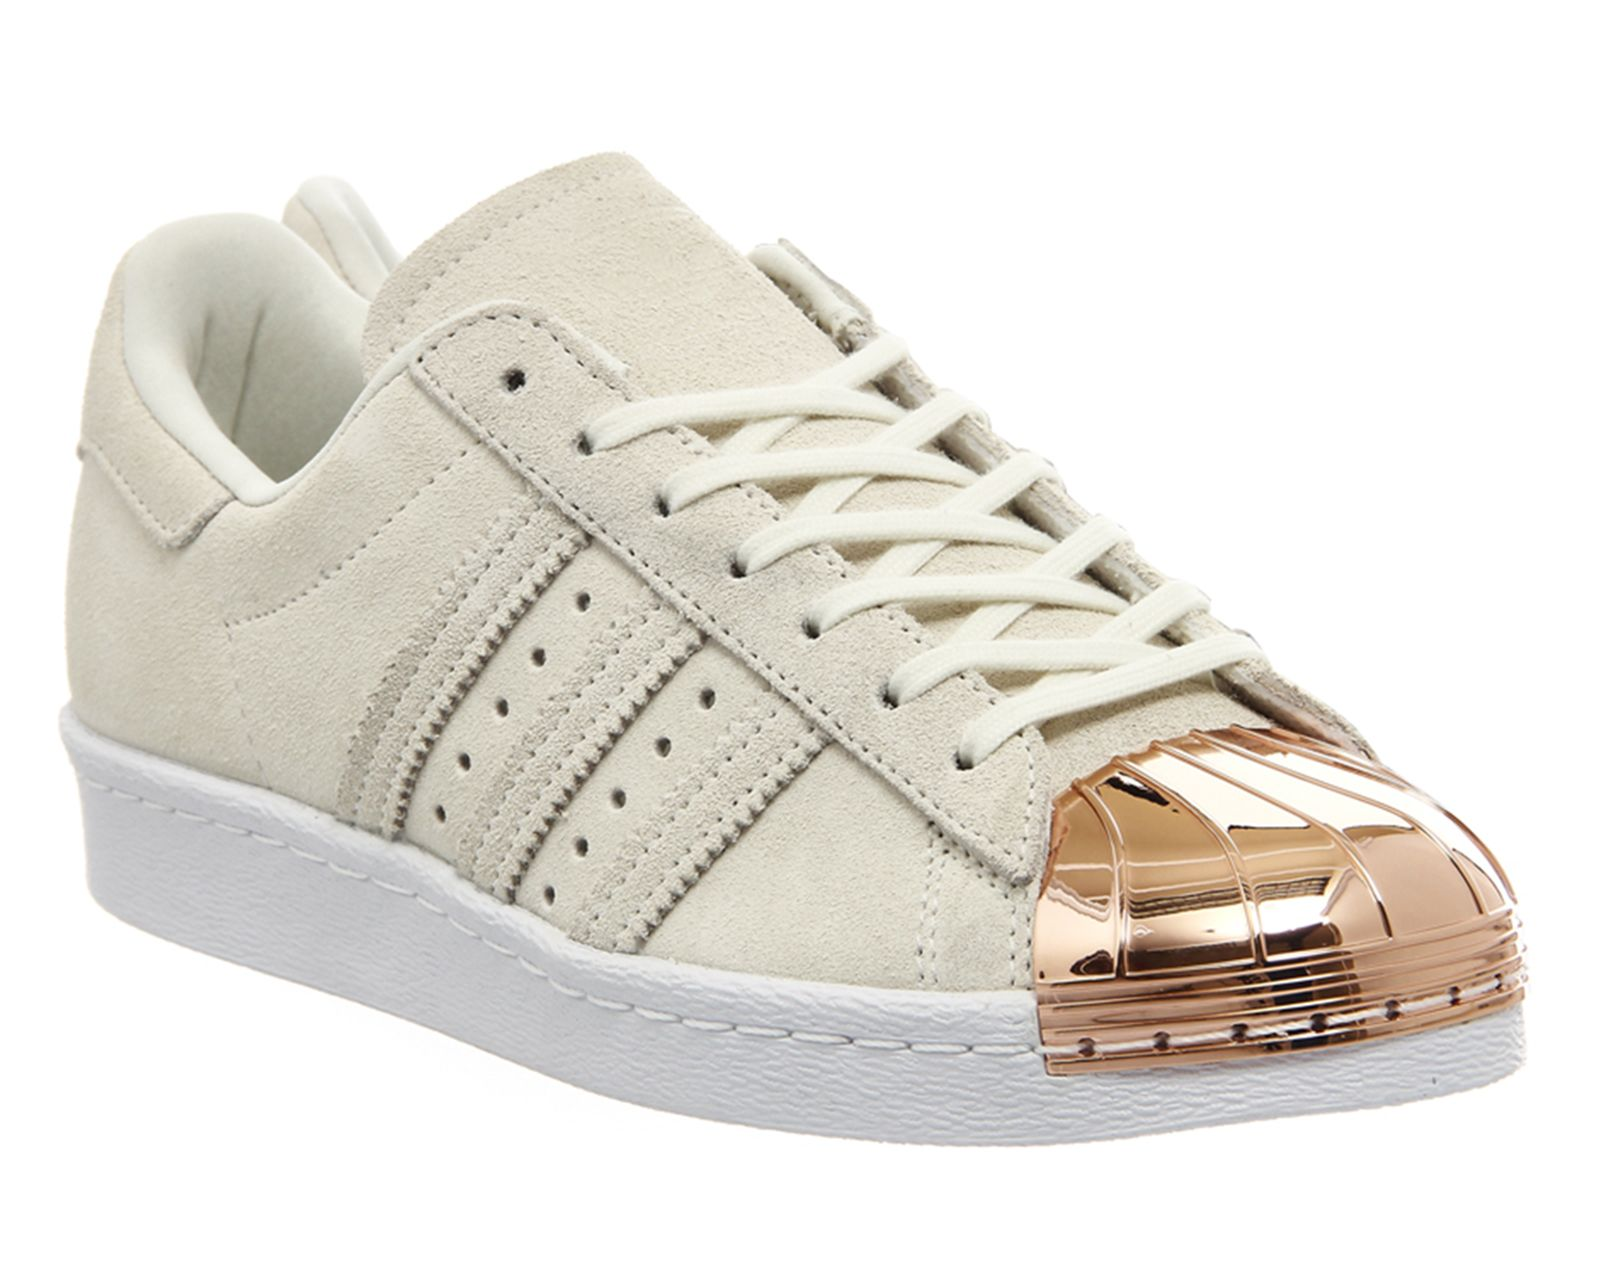 adidas superstar 80 39 s metal toe w off white rose gold trainers shoes adidas superstar adidas. Black Bedroom Furniture Sets. Home Design Ideas